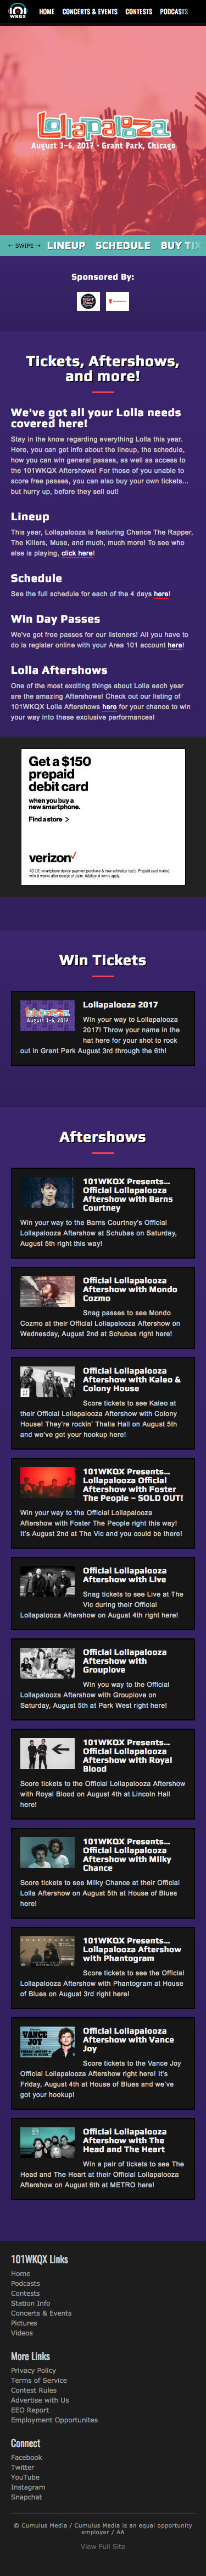 Lolla - Current Year Landing Page - iPhone